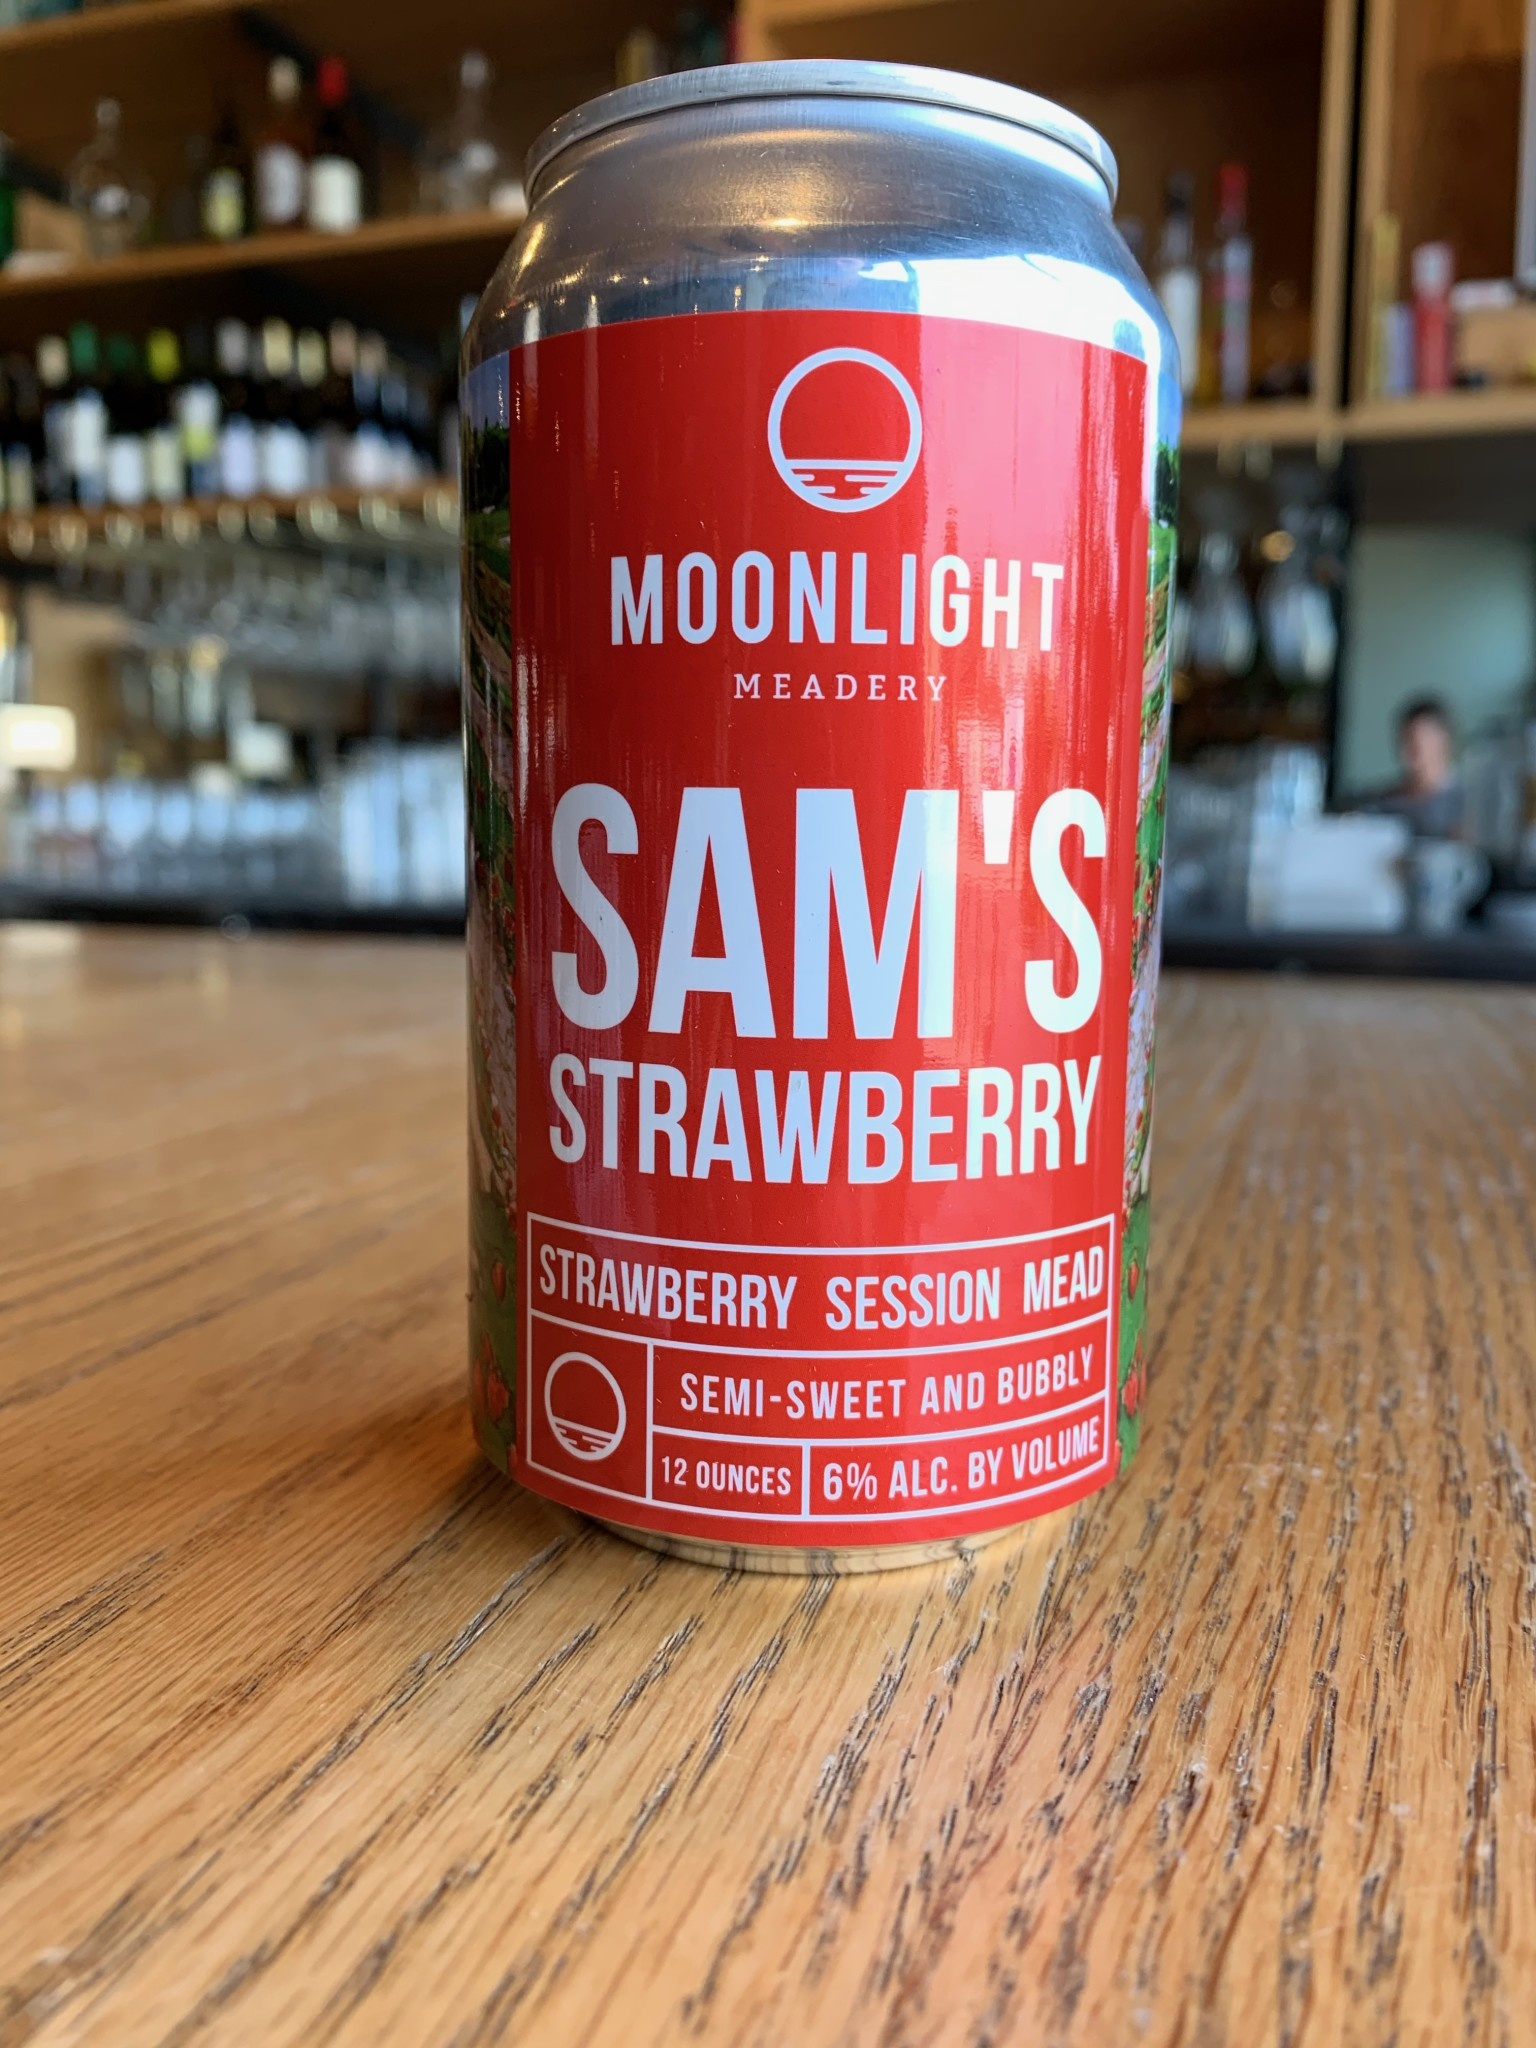 Moonlight Meadery Moonlight Meadery Sam's Strawberry Session Mead 12oz